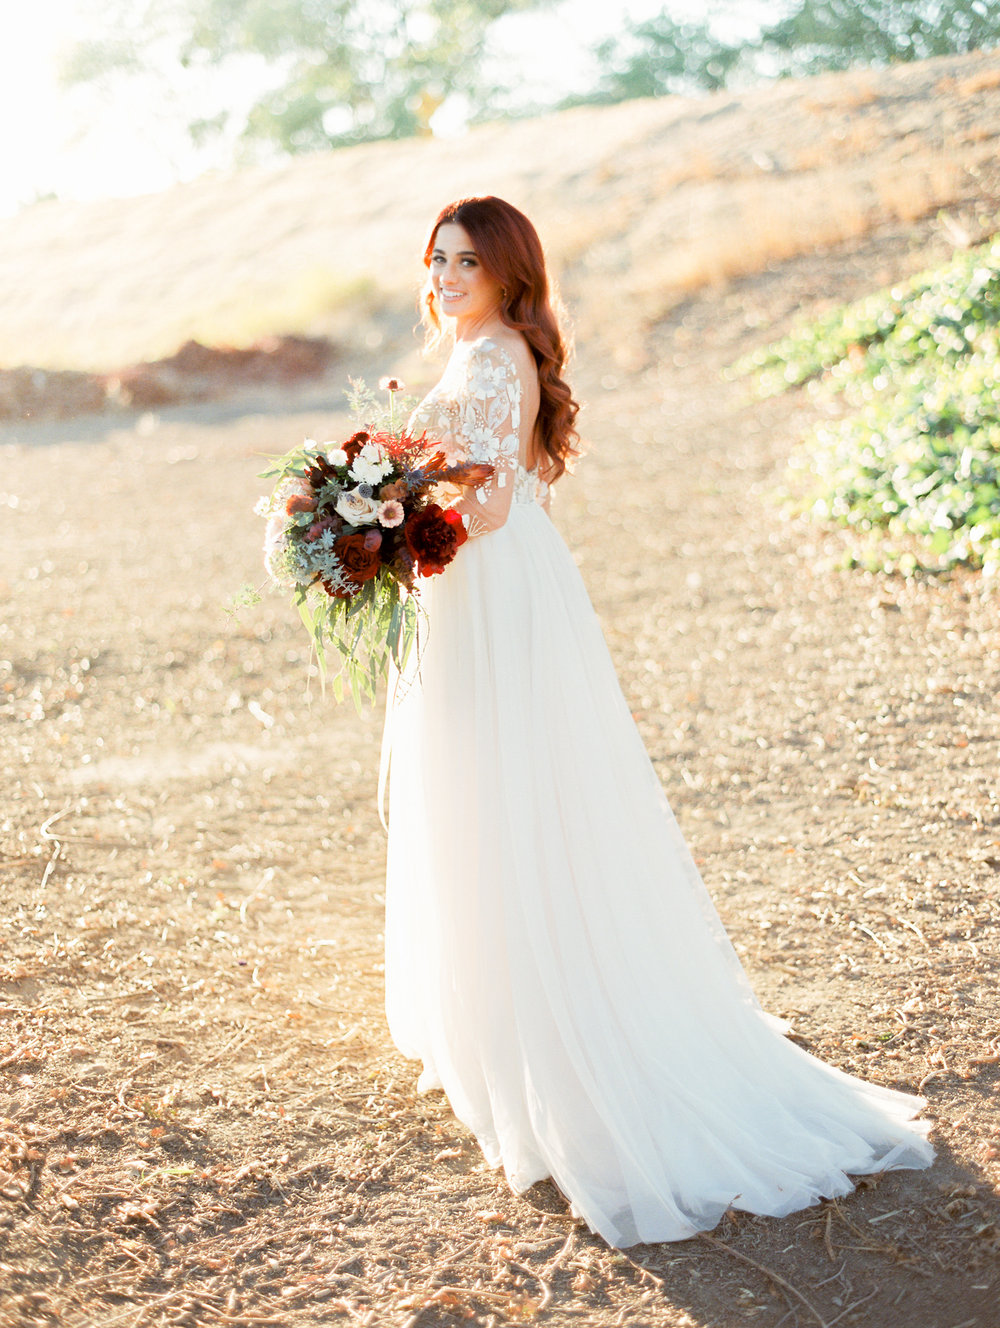 scribner-bend-vineyards-wedding-in-sacramento-california-46.jpg